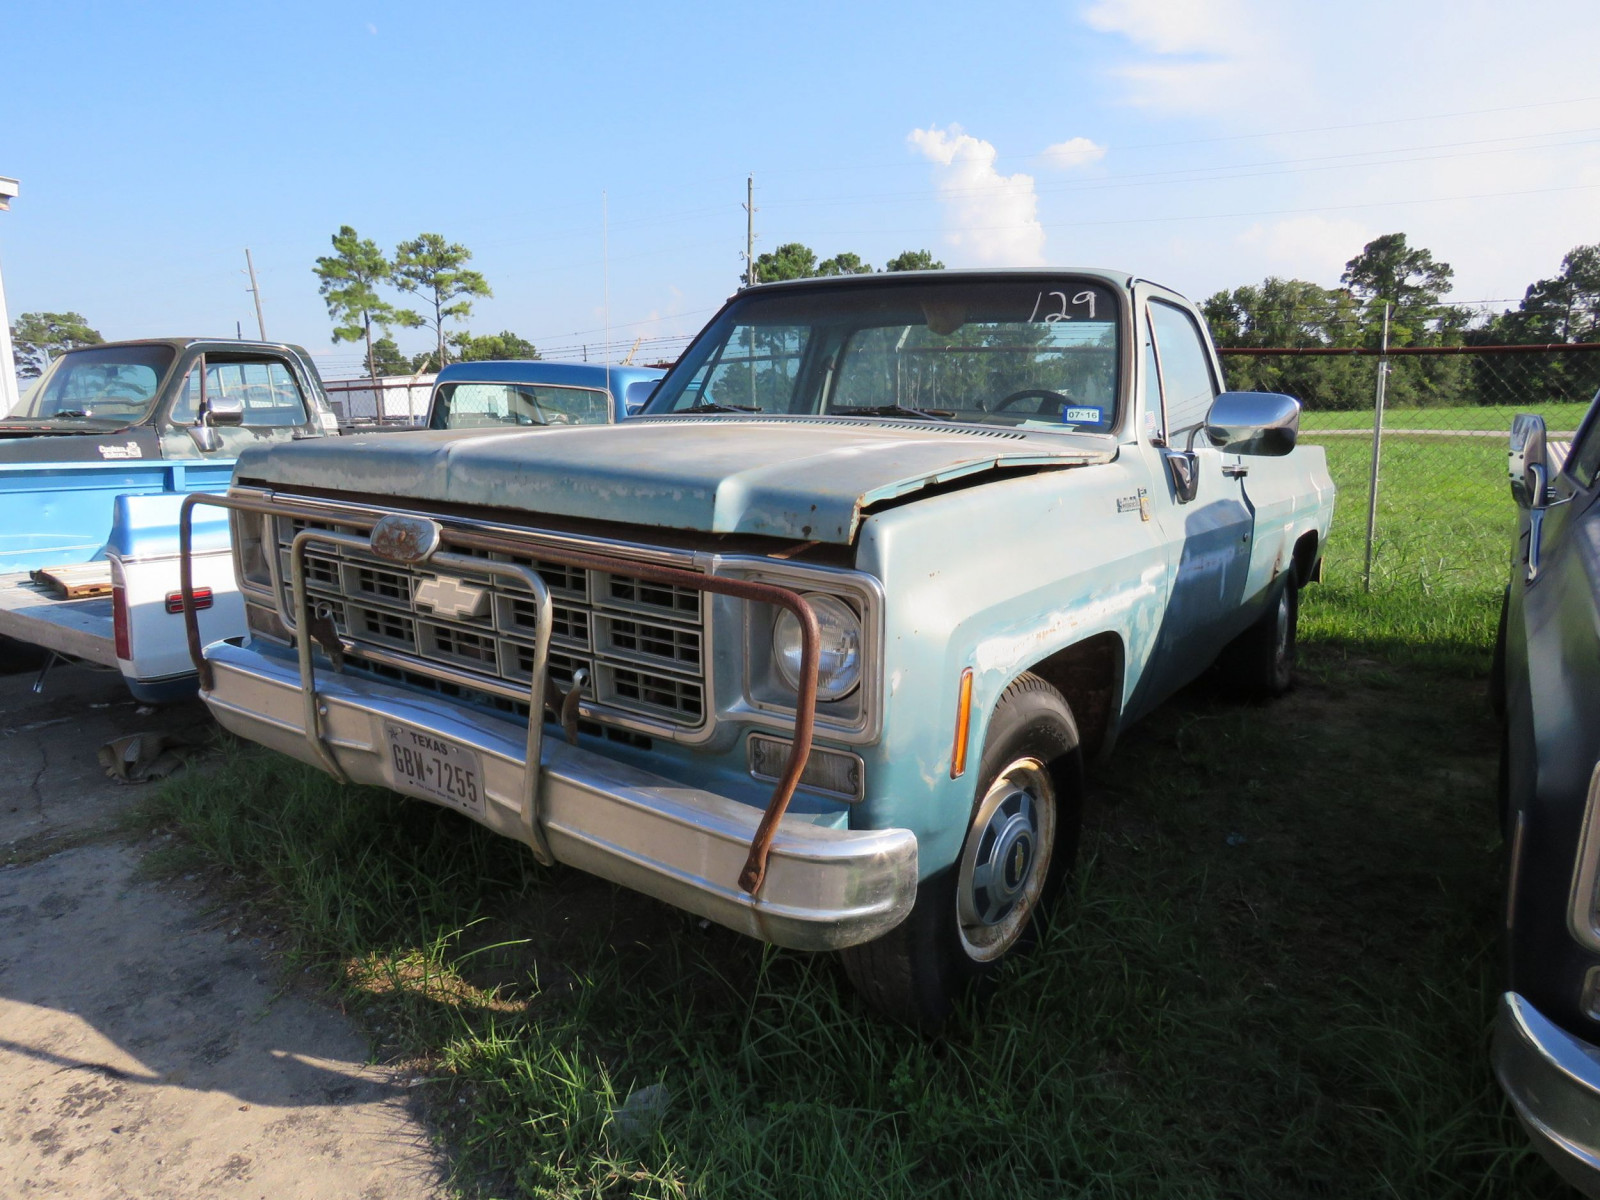 1978 Chevrolet C20 Scottsdale Pickup - Image 1